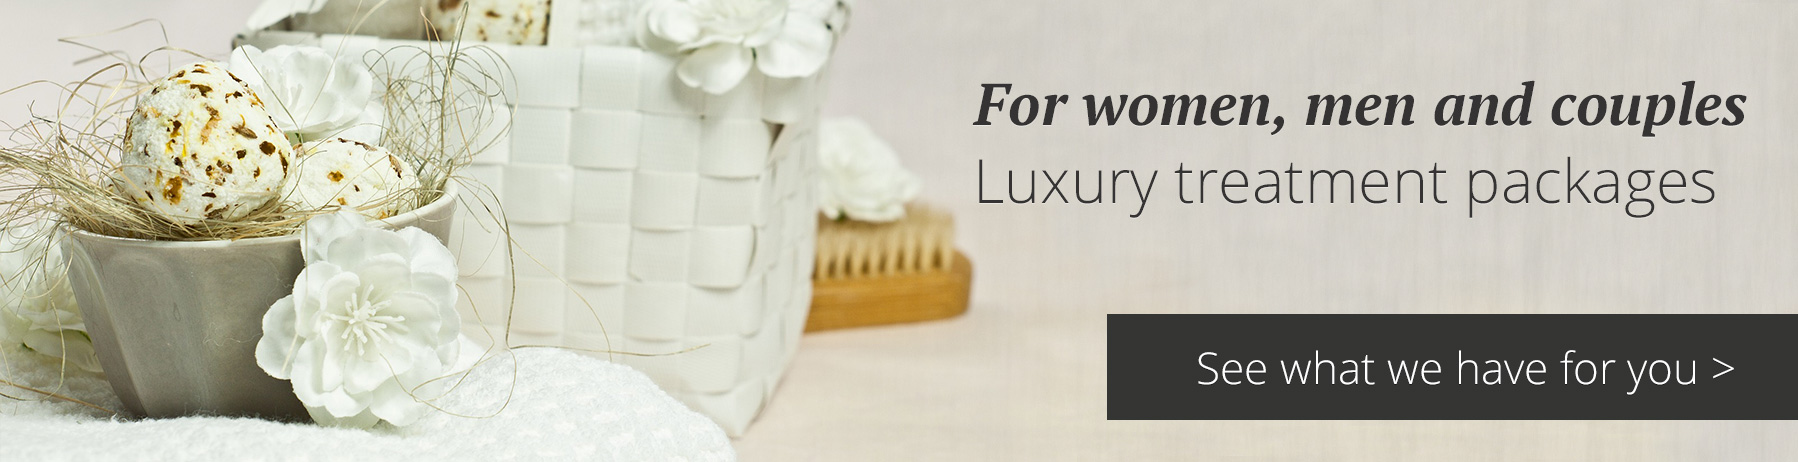 Beauty treatment packages for ladies, gents and couples